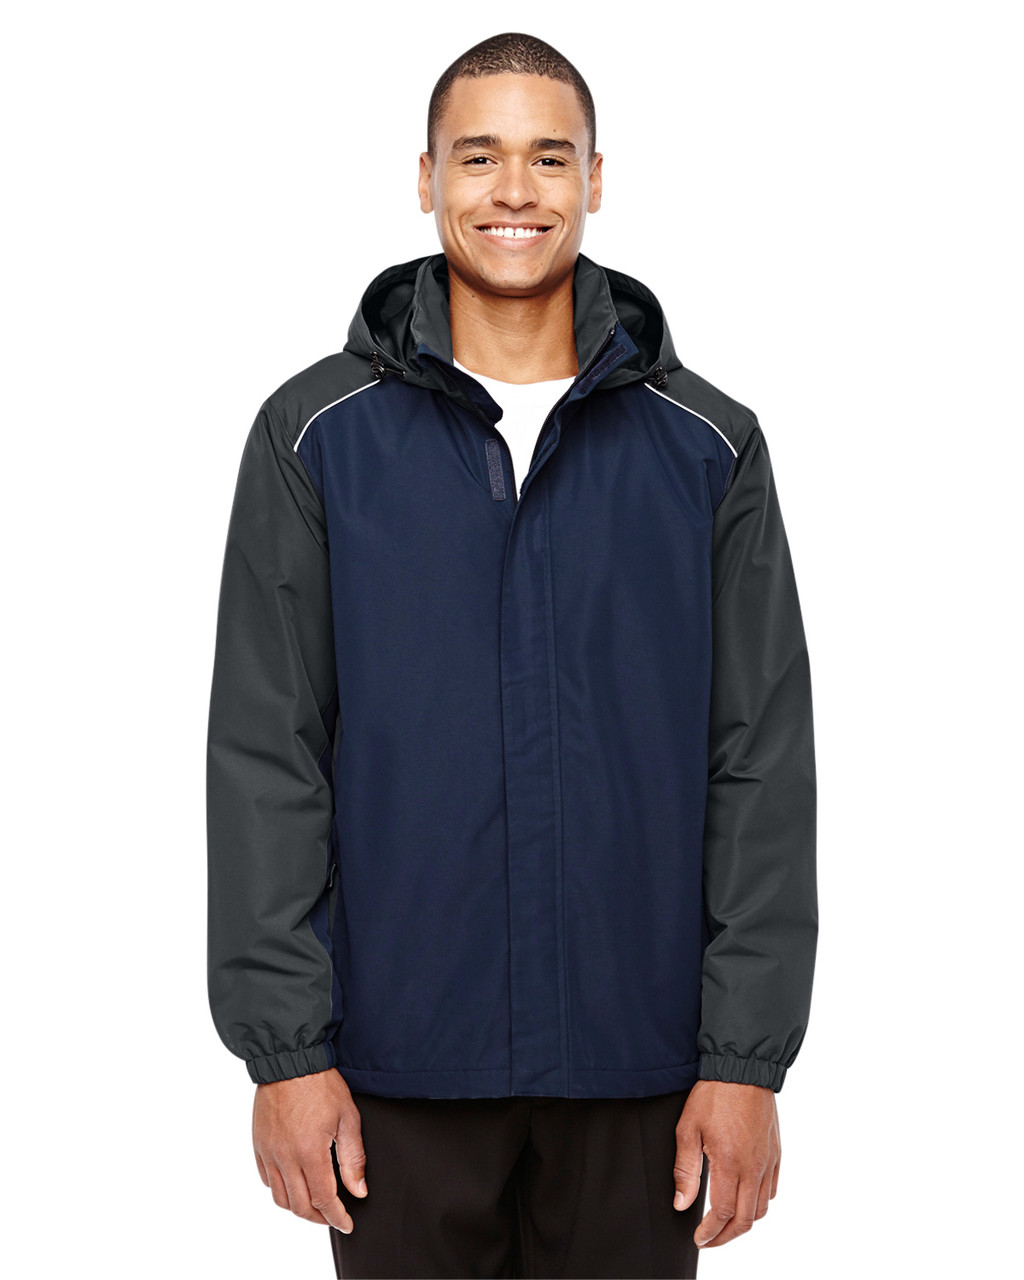 Navy/Carbon - 88225 Ash City - Core 365 Men's Inspire Colorblock All-Season Jacket | Blankclothing.ca